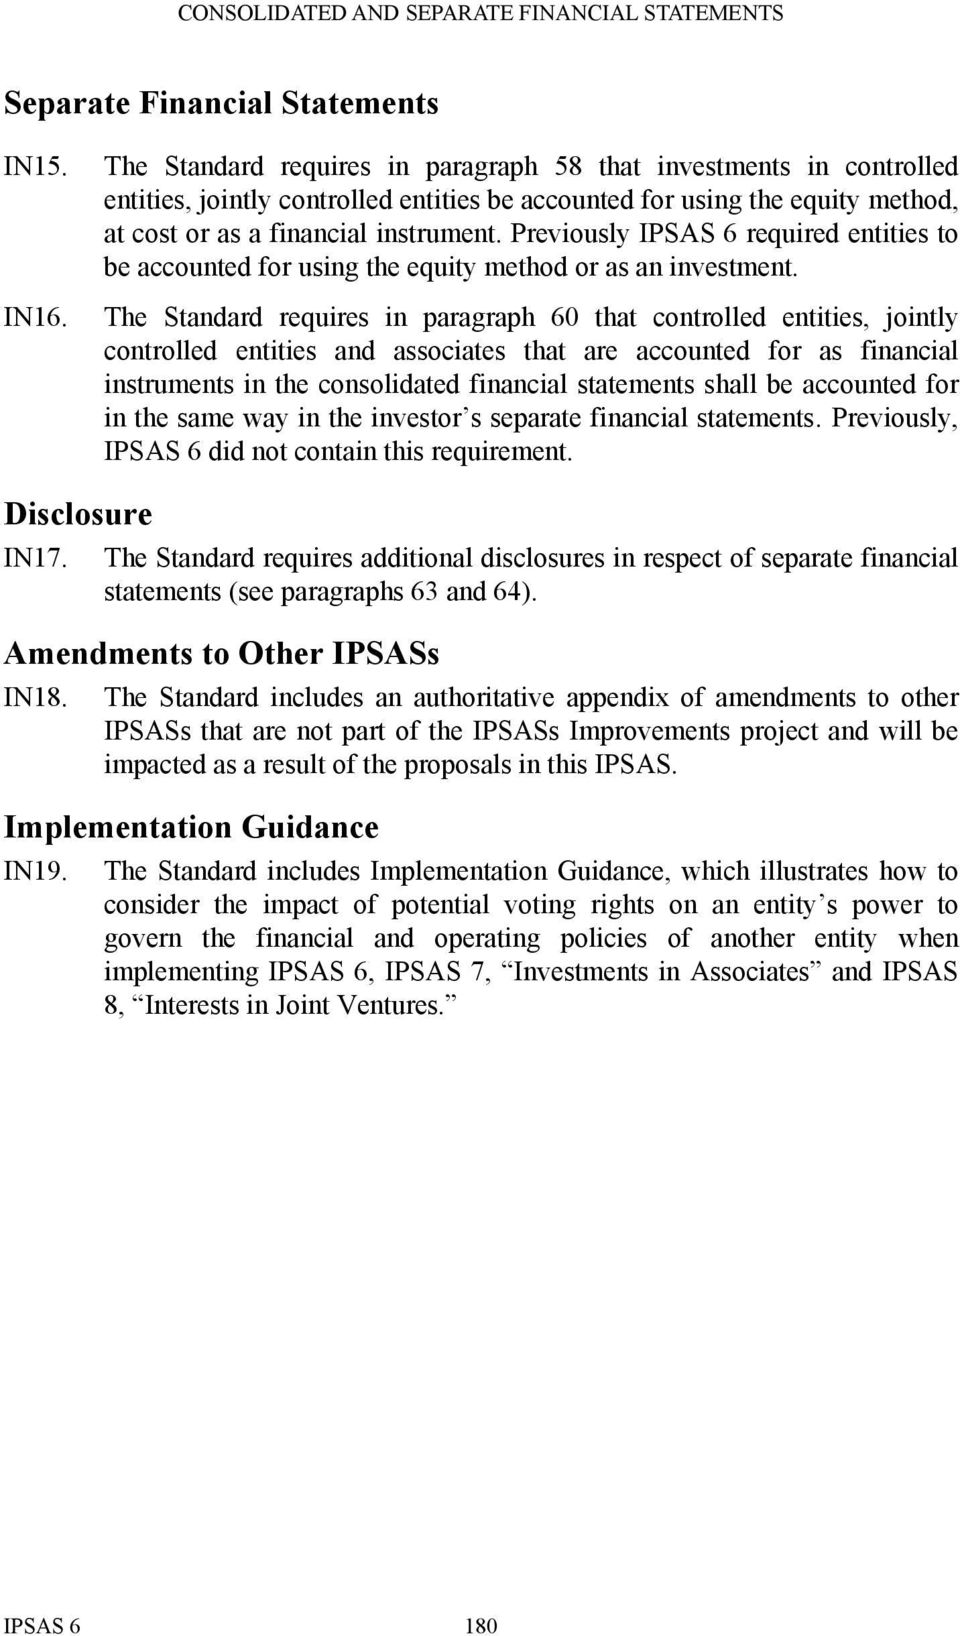 Previously IPSAS 6 required entities to be accounted for using the equity method or as an investment.